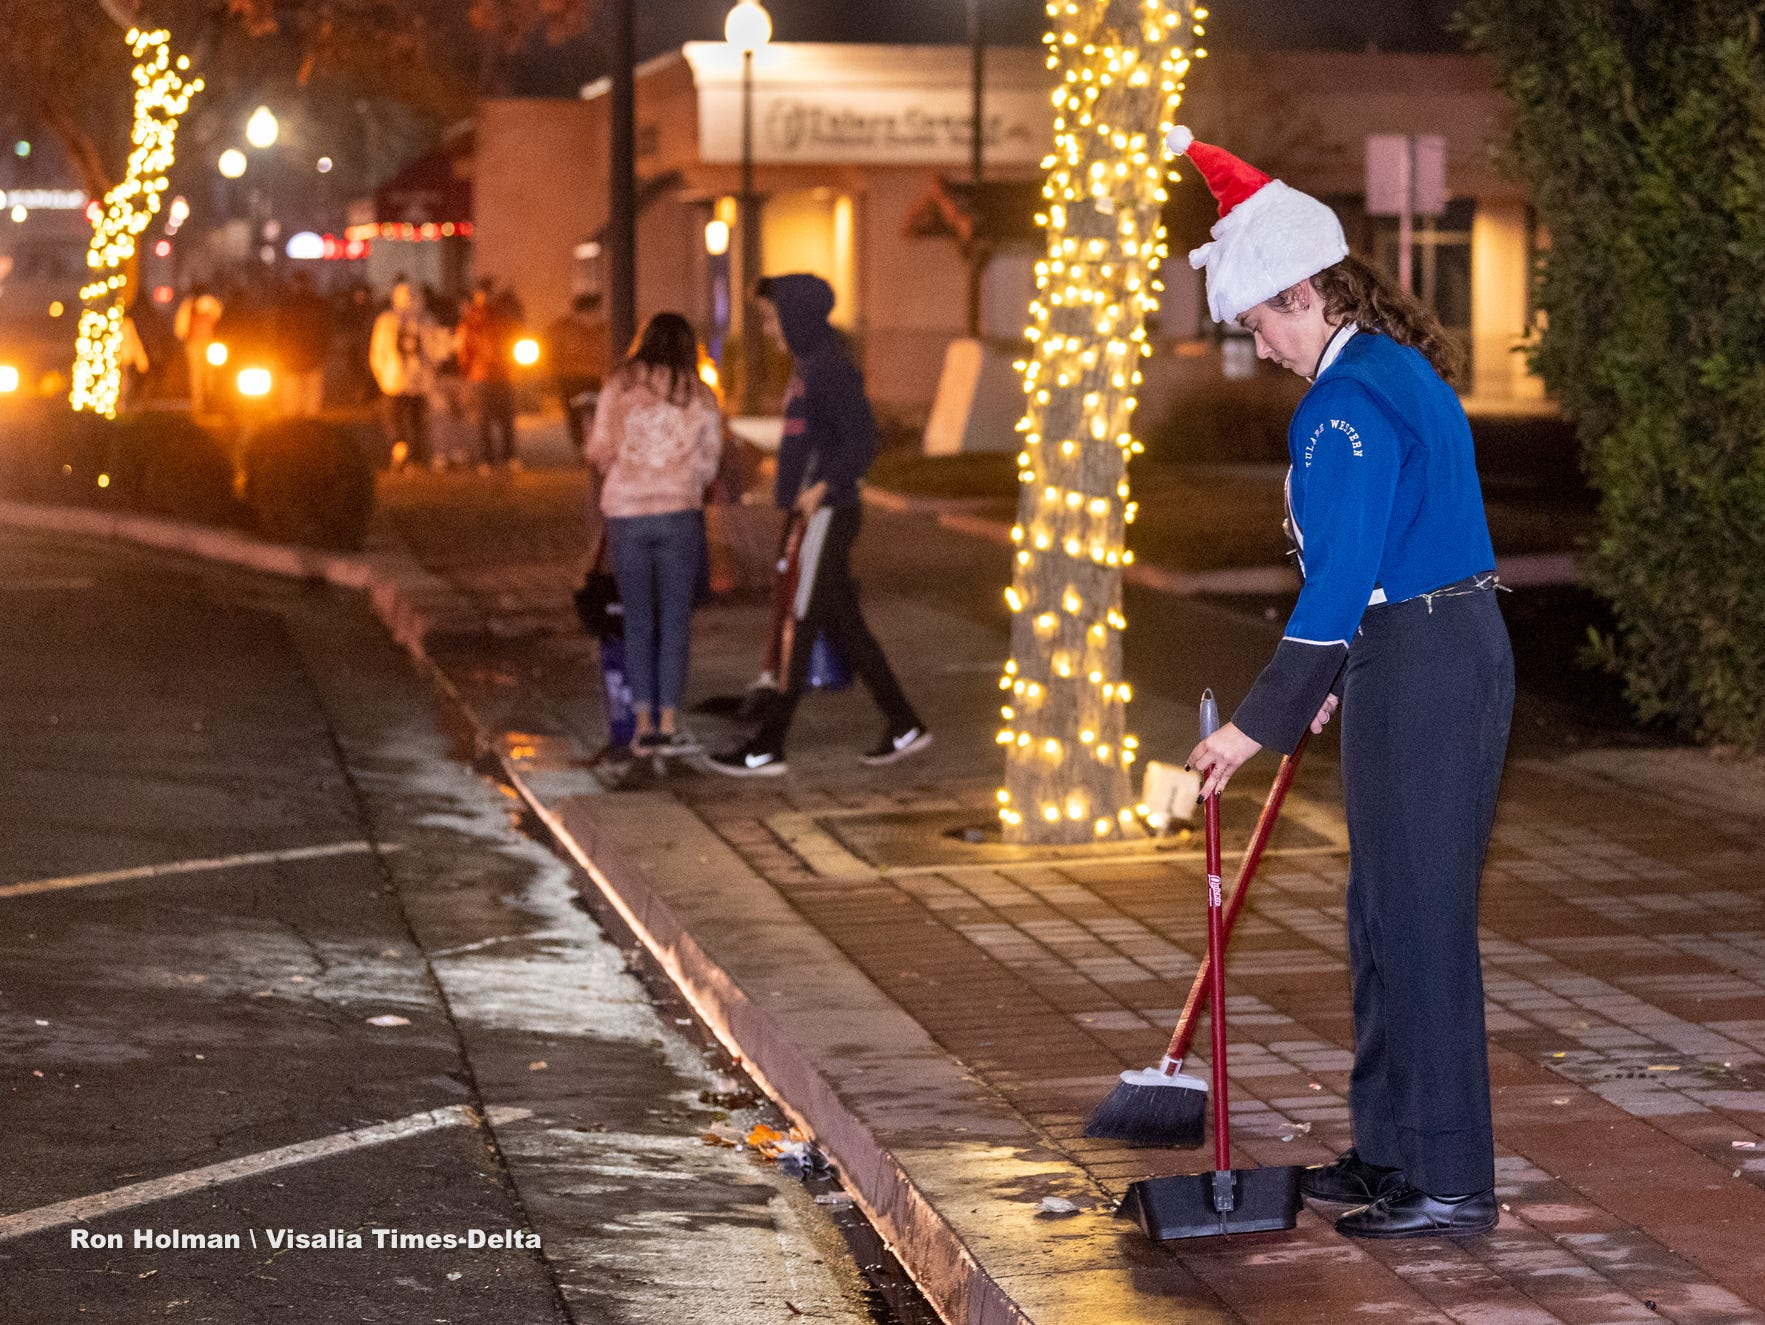 Tulare Western student Meia Borreli and others from her cross country team clean up after the Tulare Children's Christmas Parade and Tree Lighting on Thursday, December 6, 2018. The Chamber of Commerce made a donation to the team for their community service.